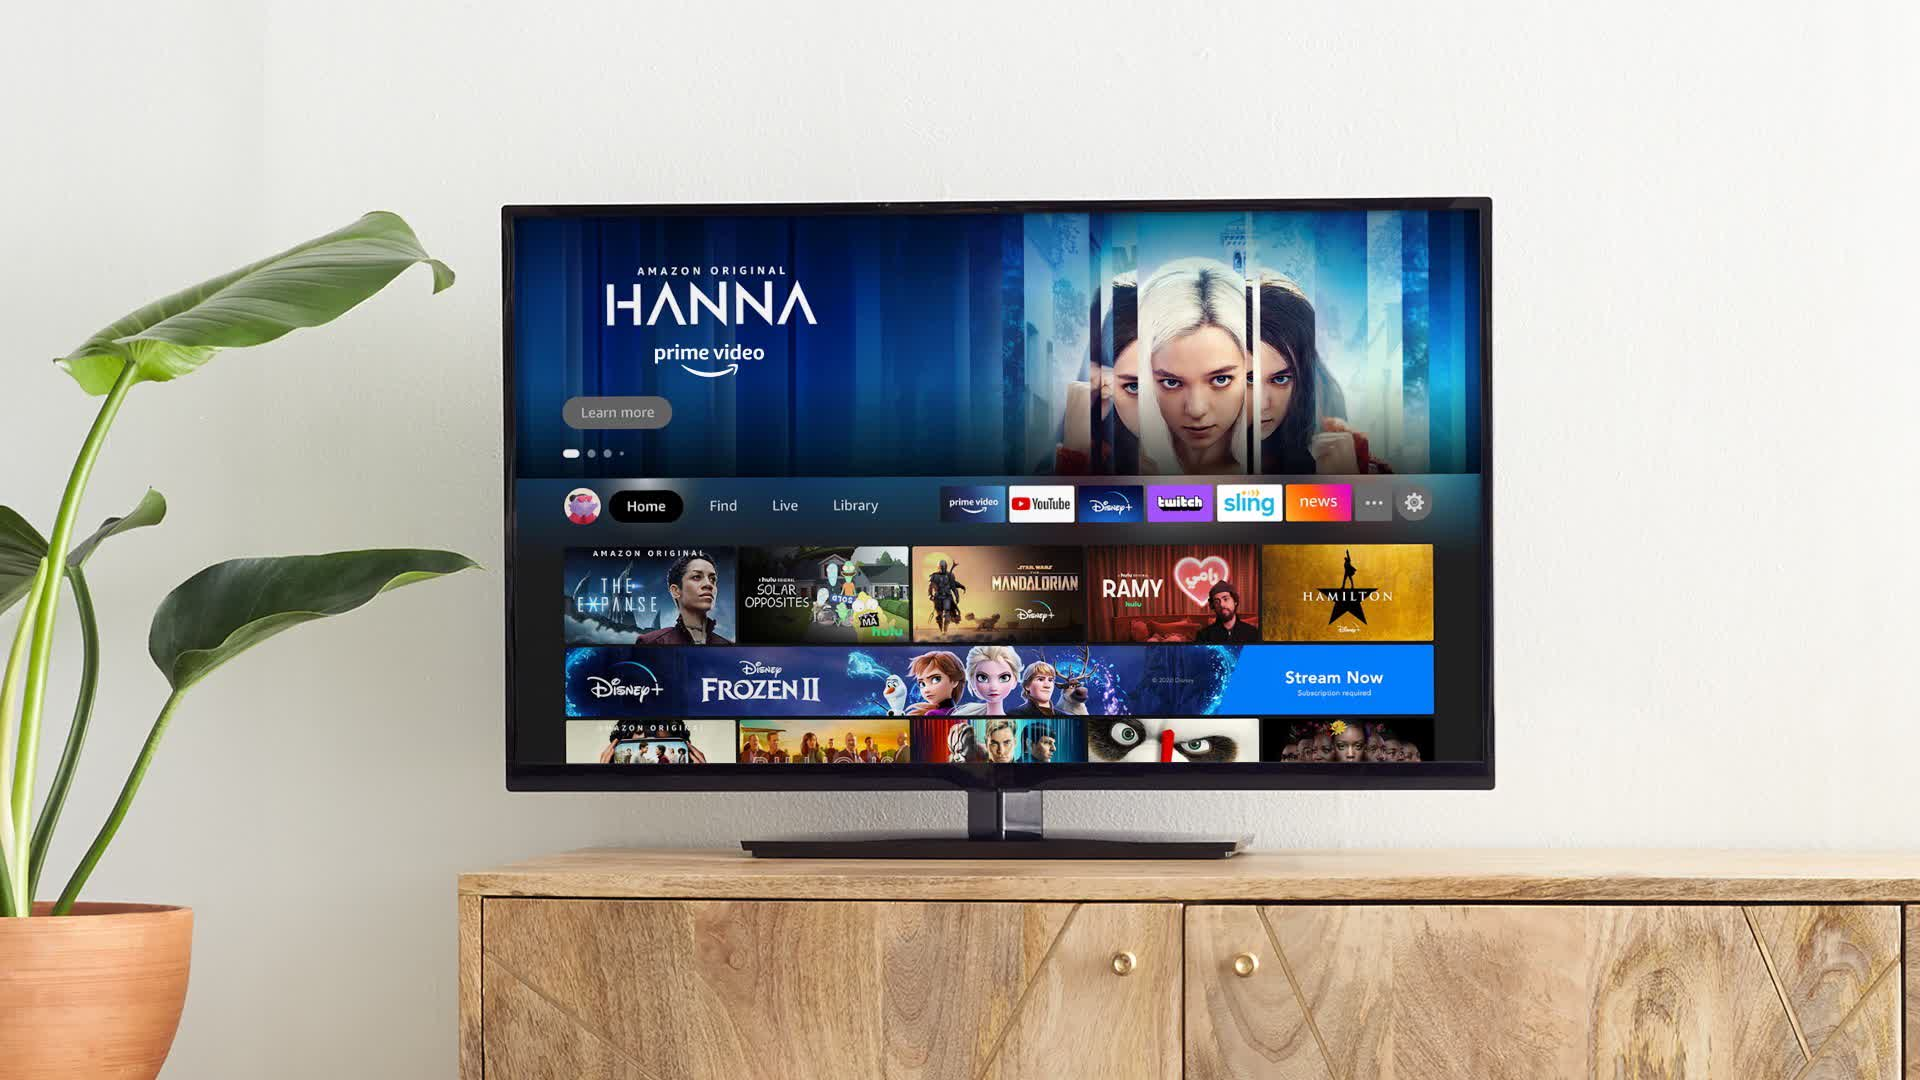 Amazon expected to release own Alexa-powered TVs this year